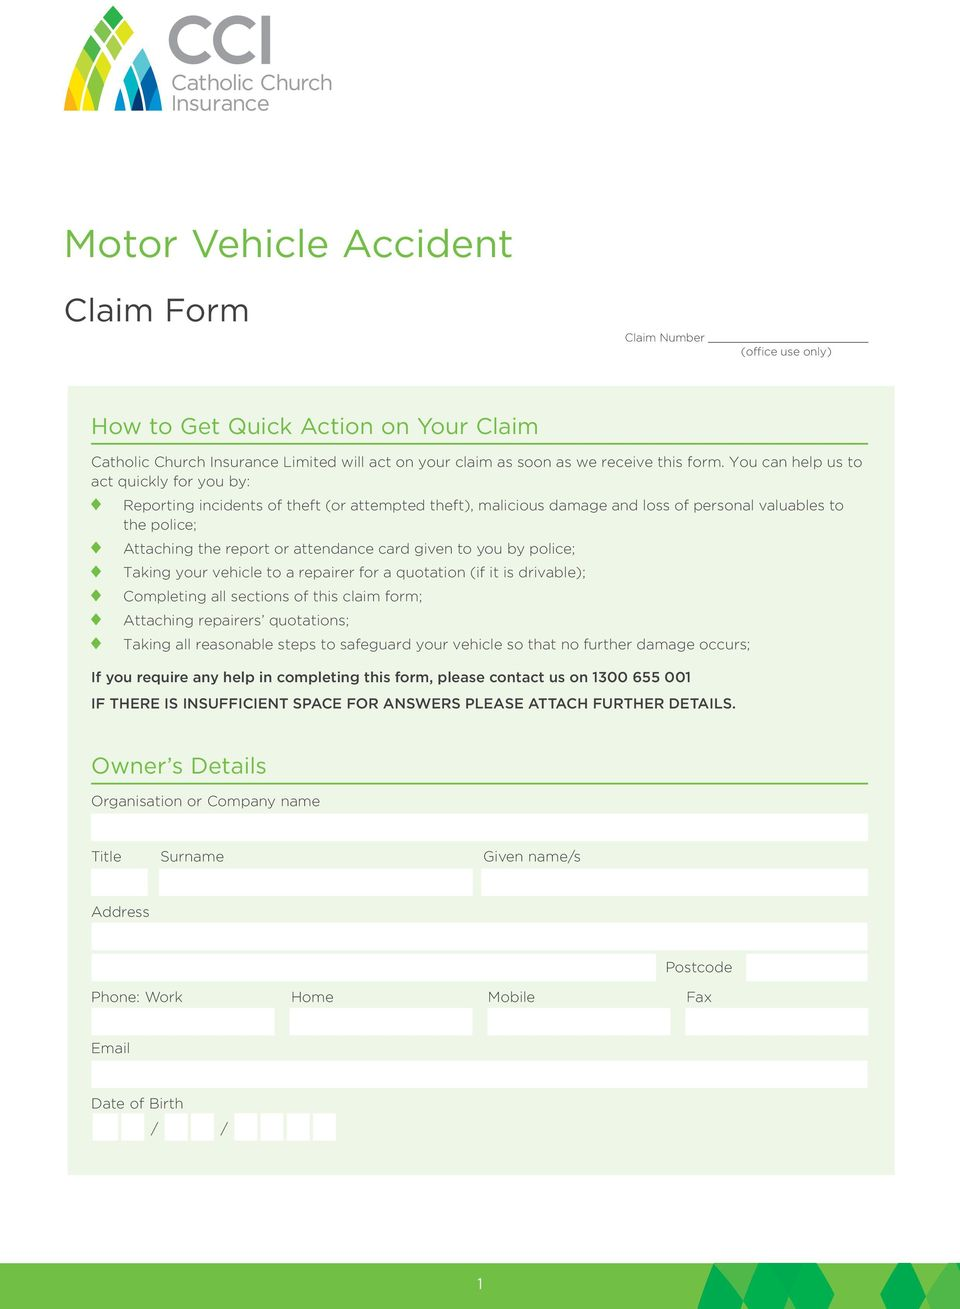 given to you by police; Taking your vehicle to a repairer for a quotation (if it is drivable); Completing all sections of this claim form; Attaching repairers quotations; Taking all reasonable steps